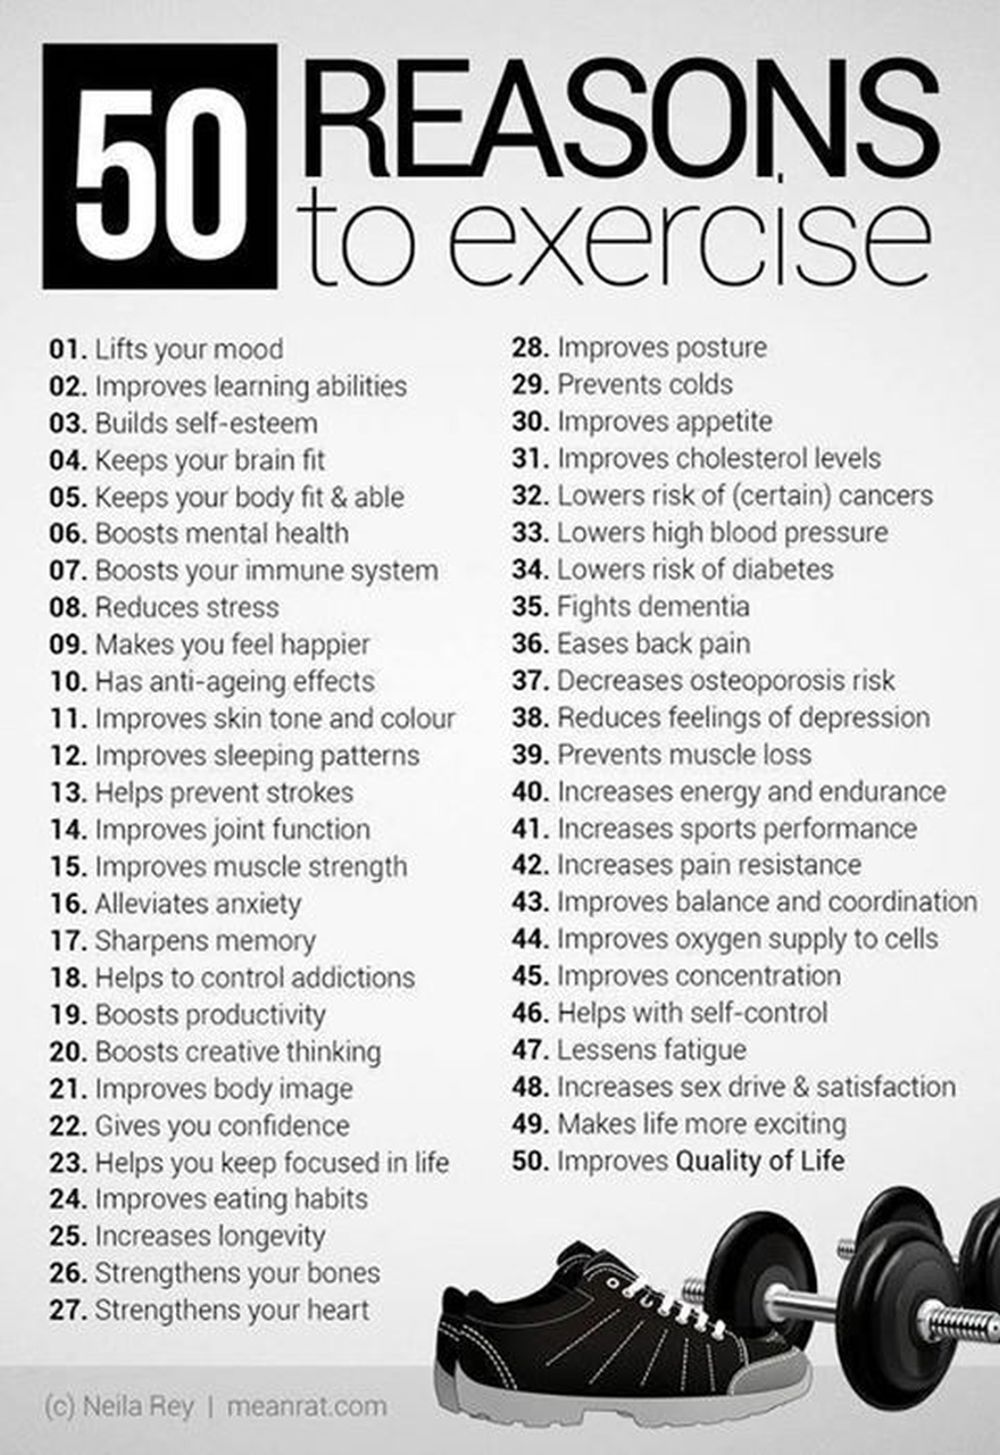 50 Reasons Why You Should Exercise